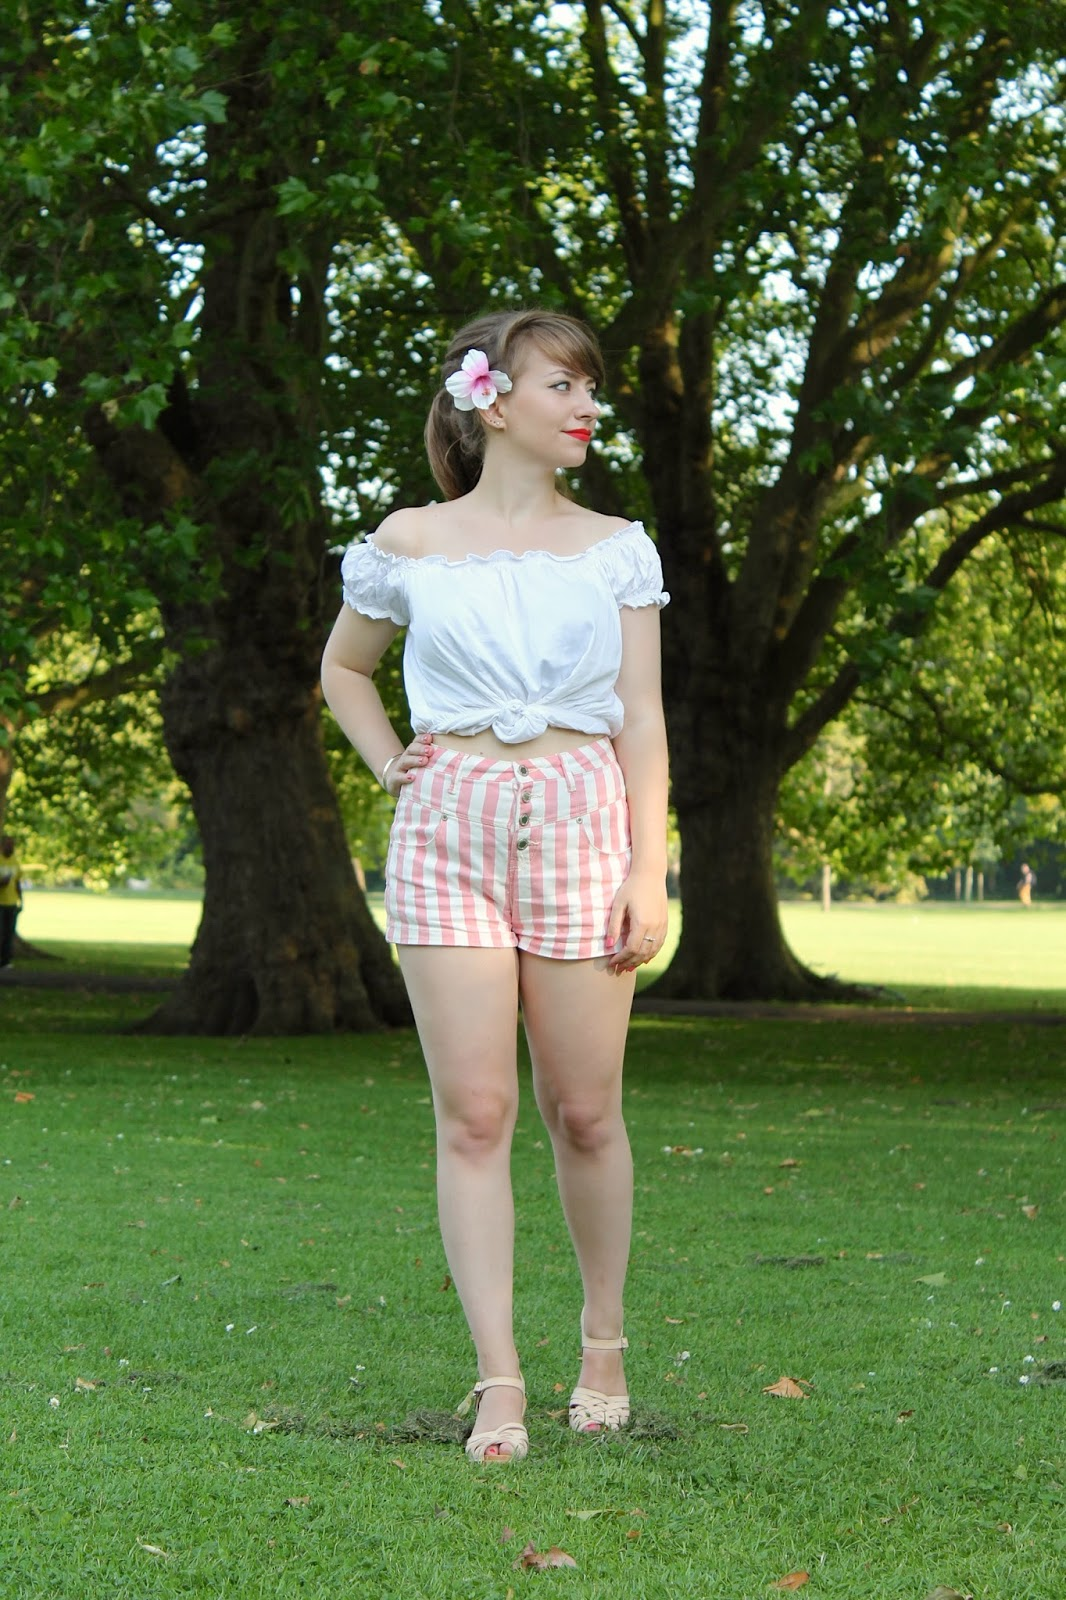 Pin-up style gypsy top and shorts